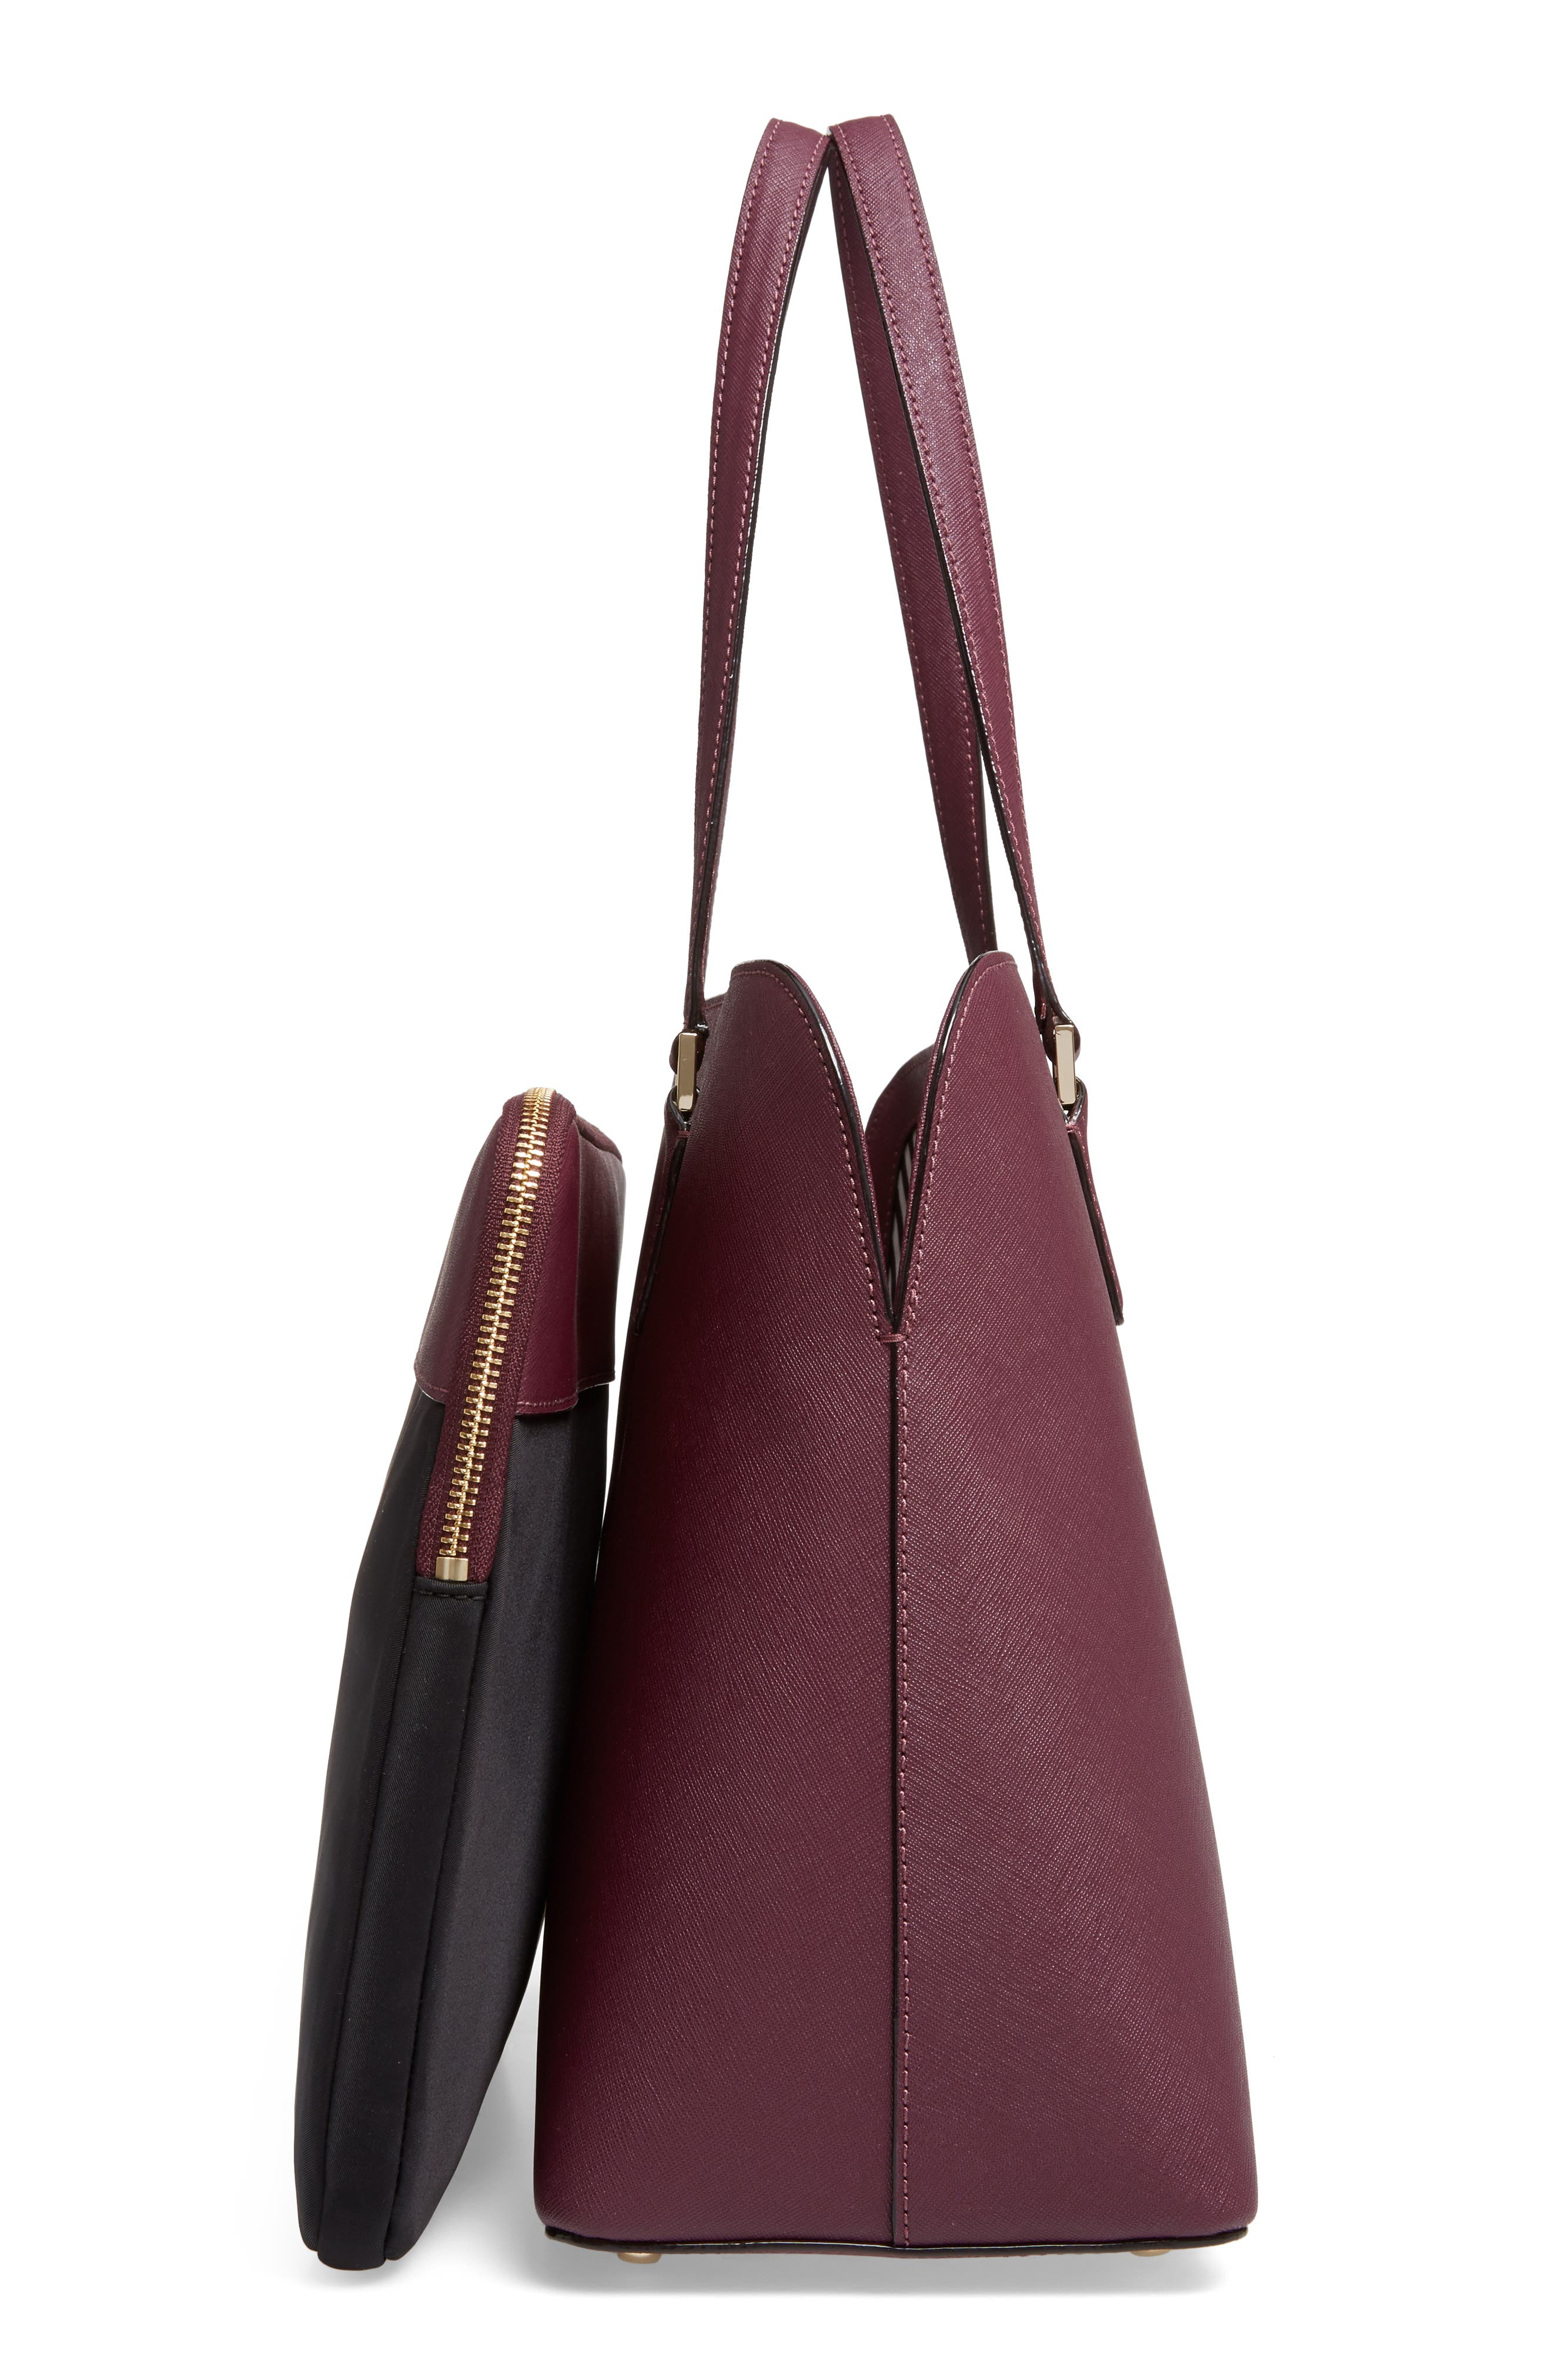 cameron street - marybeth leather tote,                             Alternate thumbnail 5, color,                             513